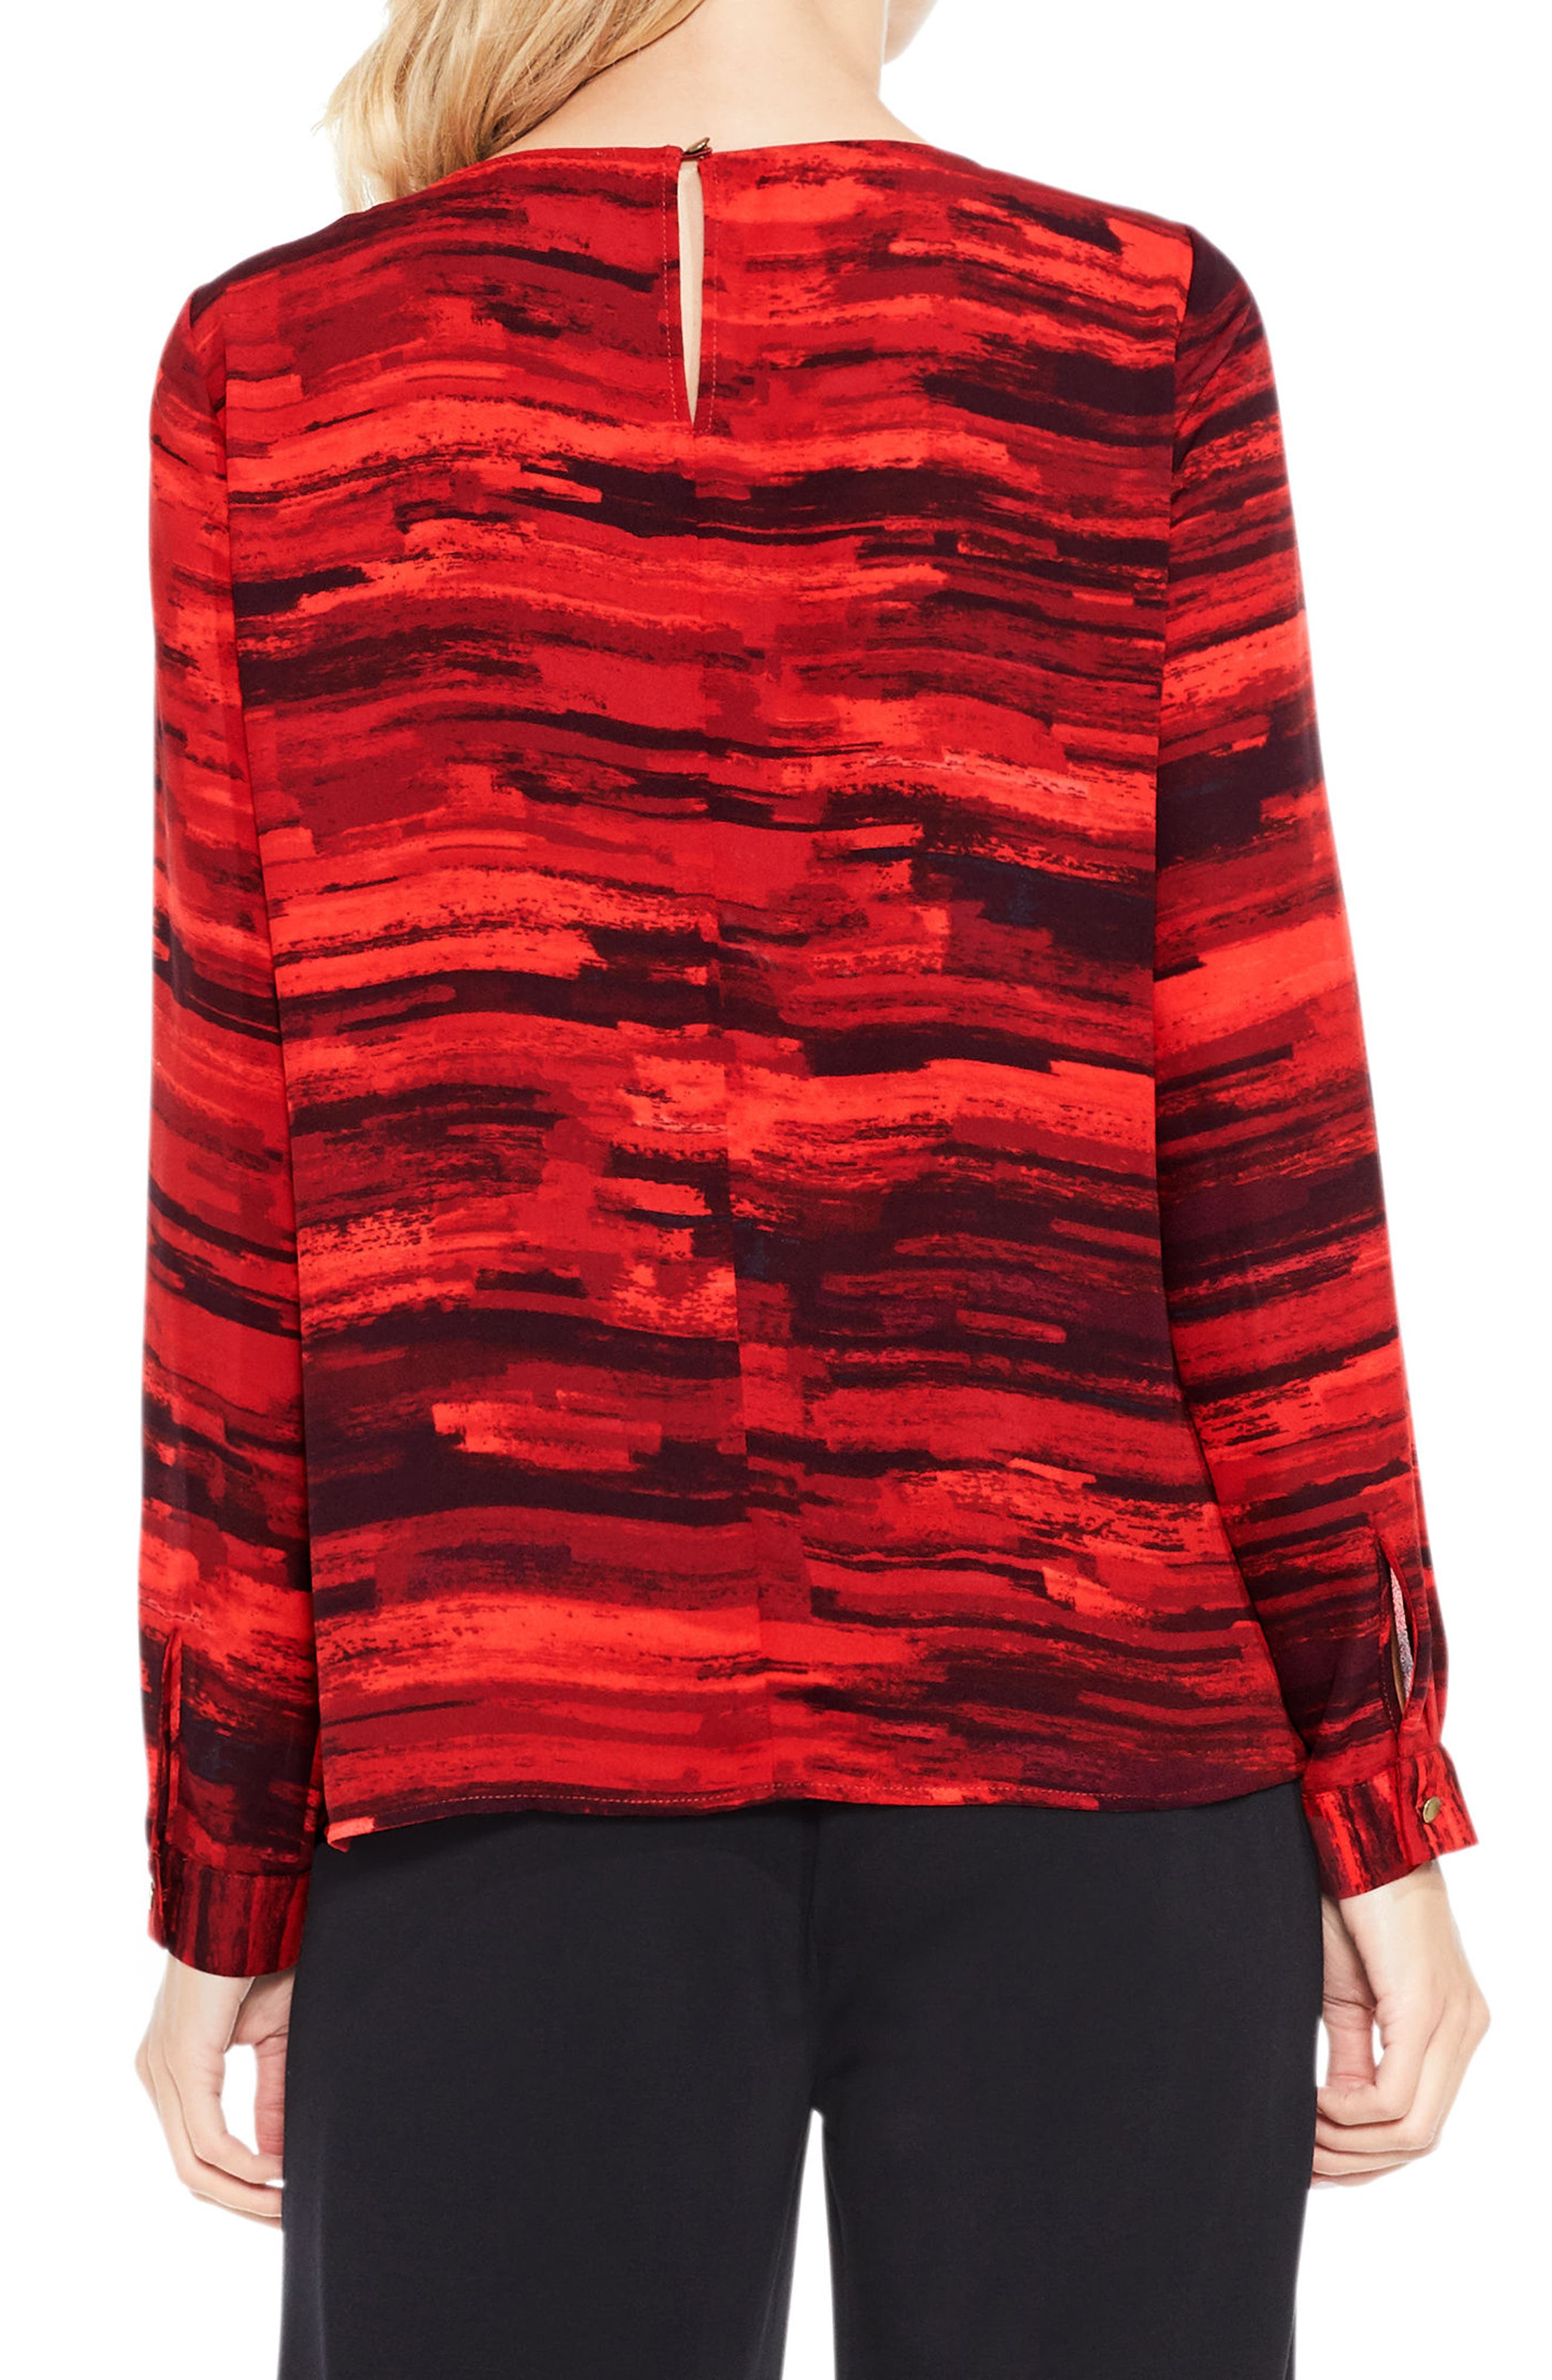 Muses Print Tiered Blouse,                             Alternate thumbnail 2, color,                             614